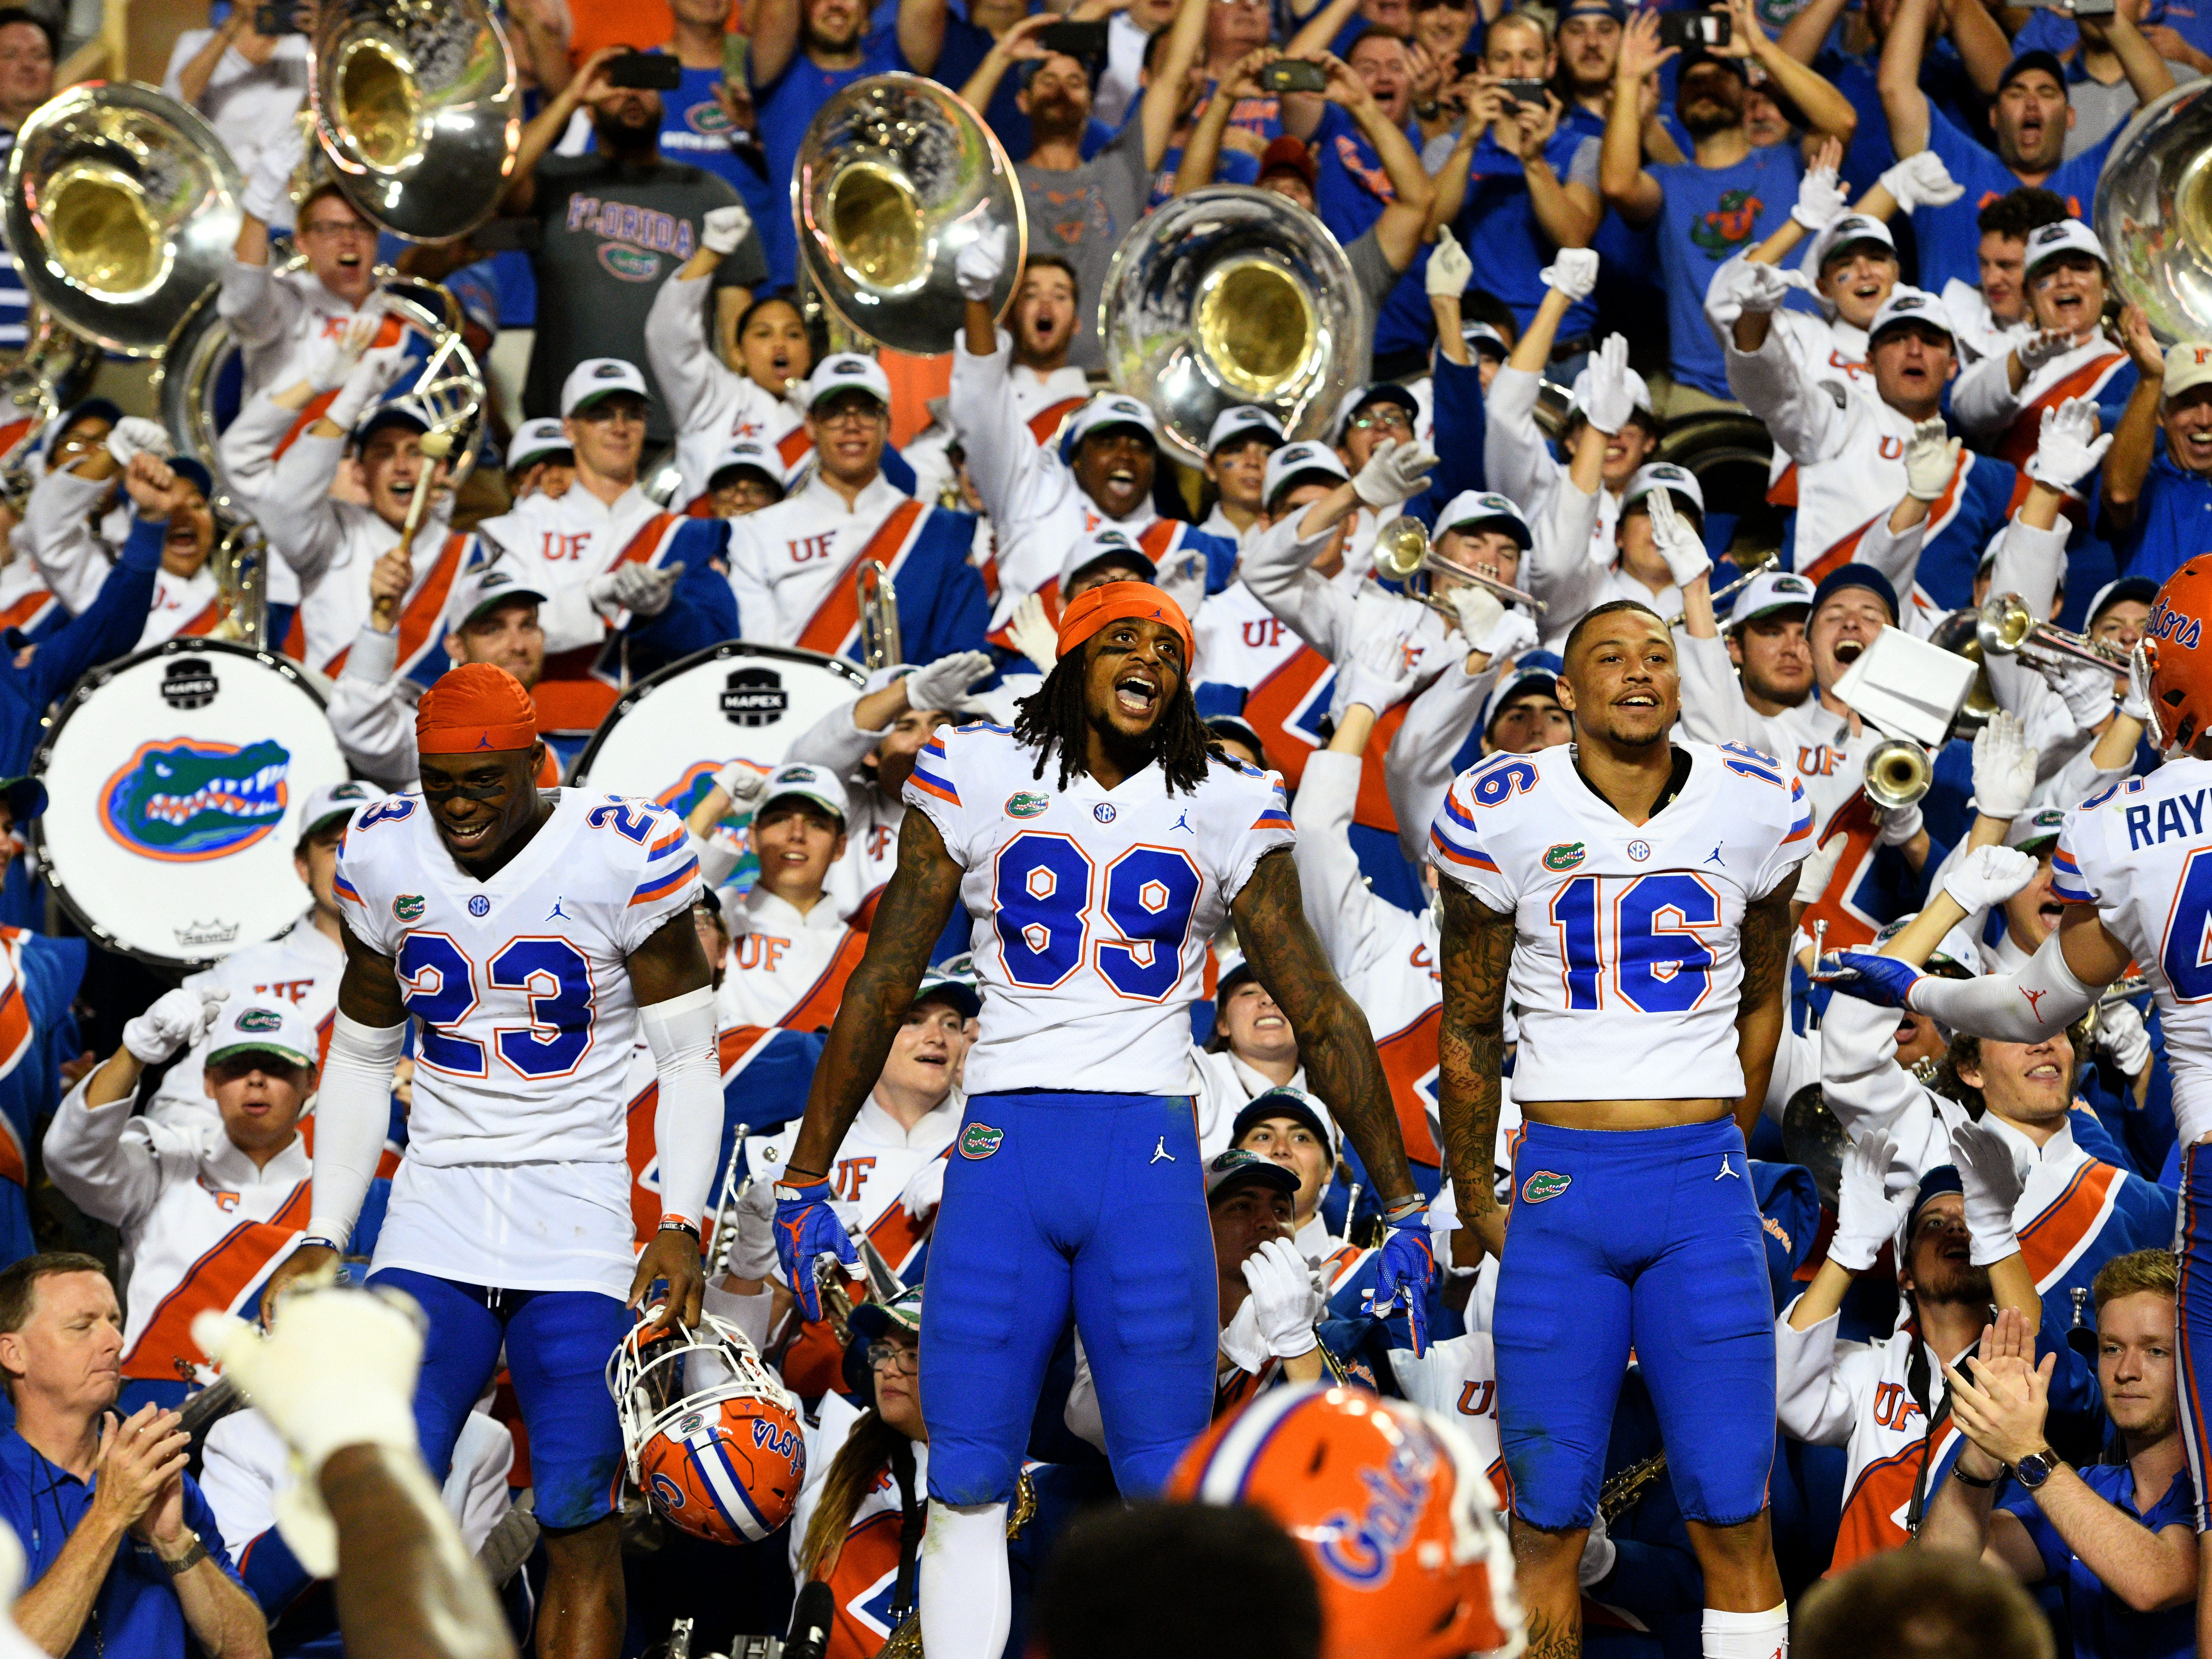 Florida wide receiver Tyrie Cleveland (89) and his teammates celecrate their 47-21 win over Tennessee in Neyland Stadium Saturday, September 22, 2018 in Knoxville, Tenn.